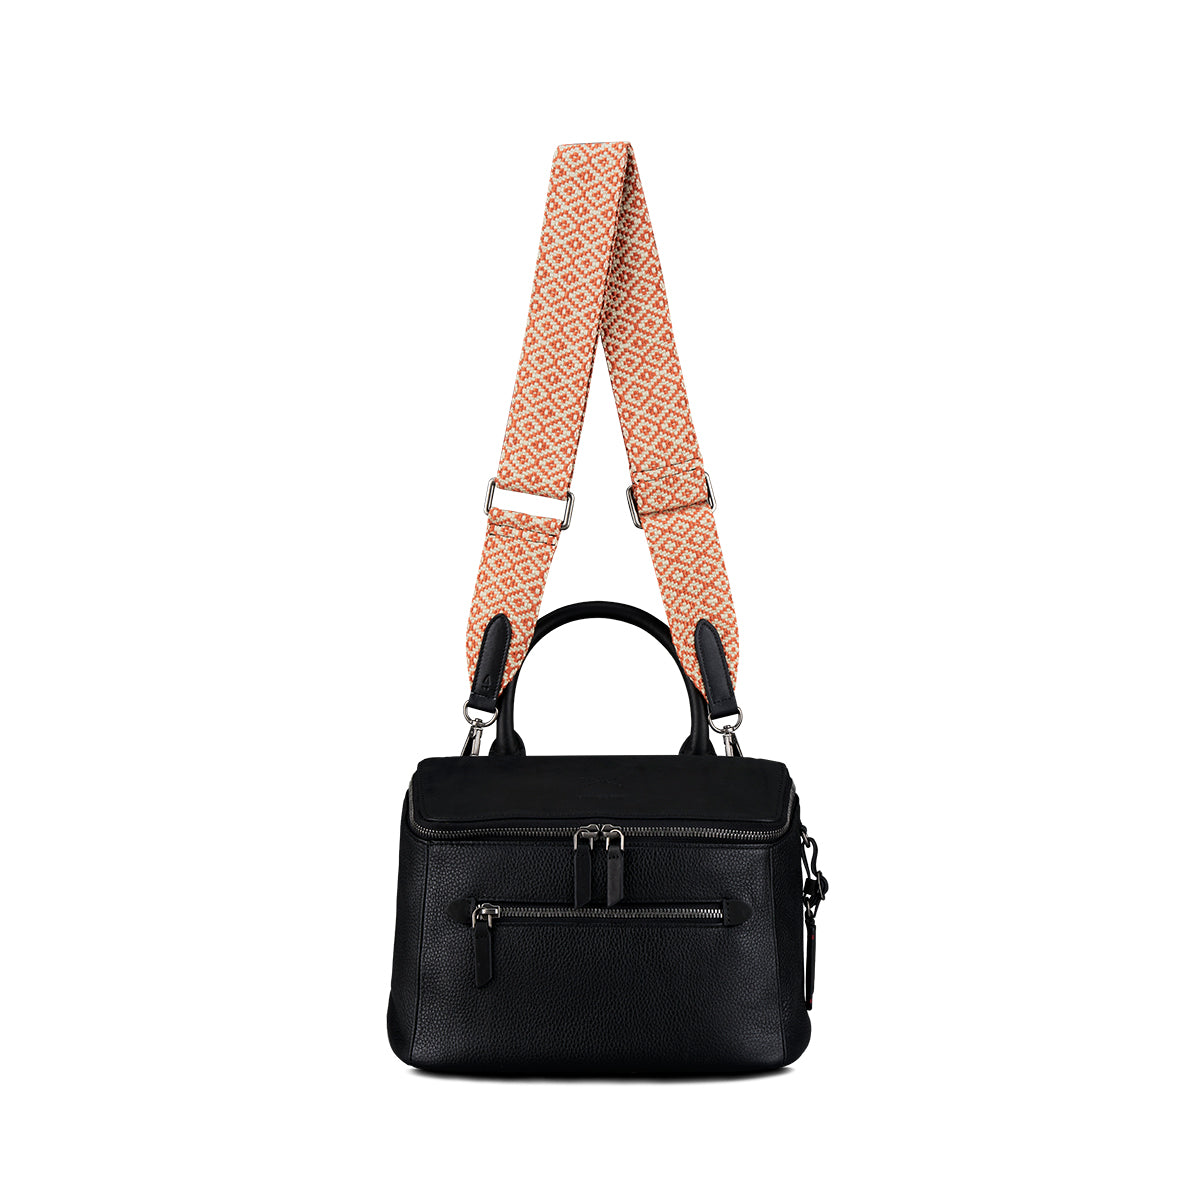 Diamond Webbing Bag Strap